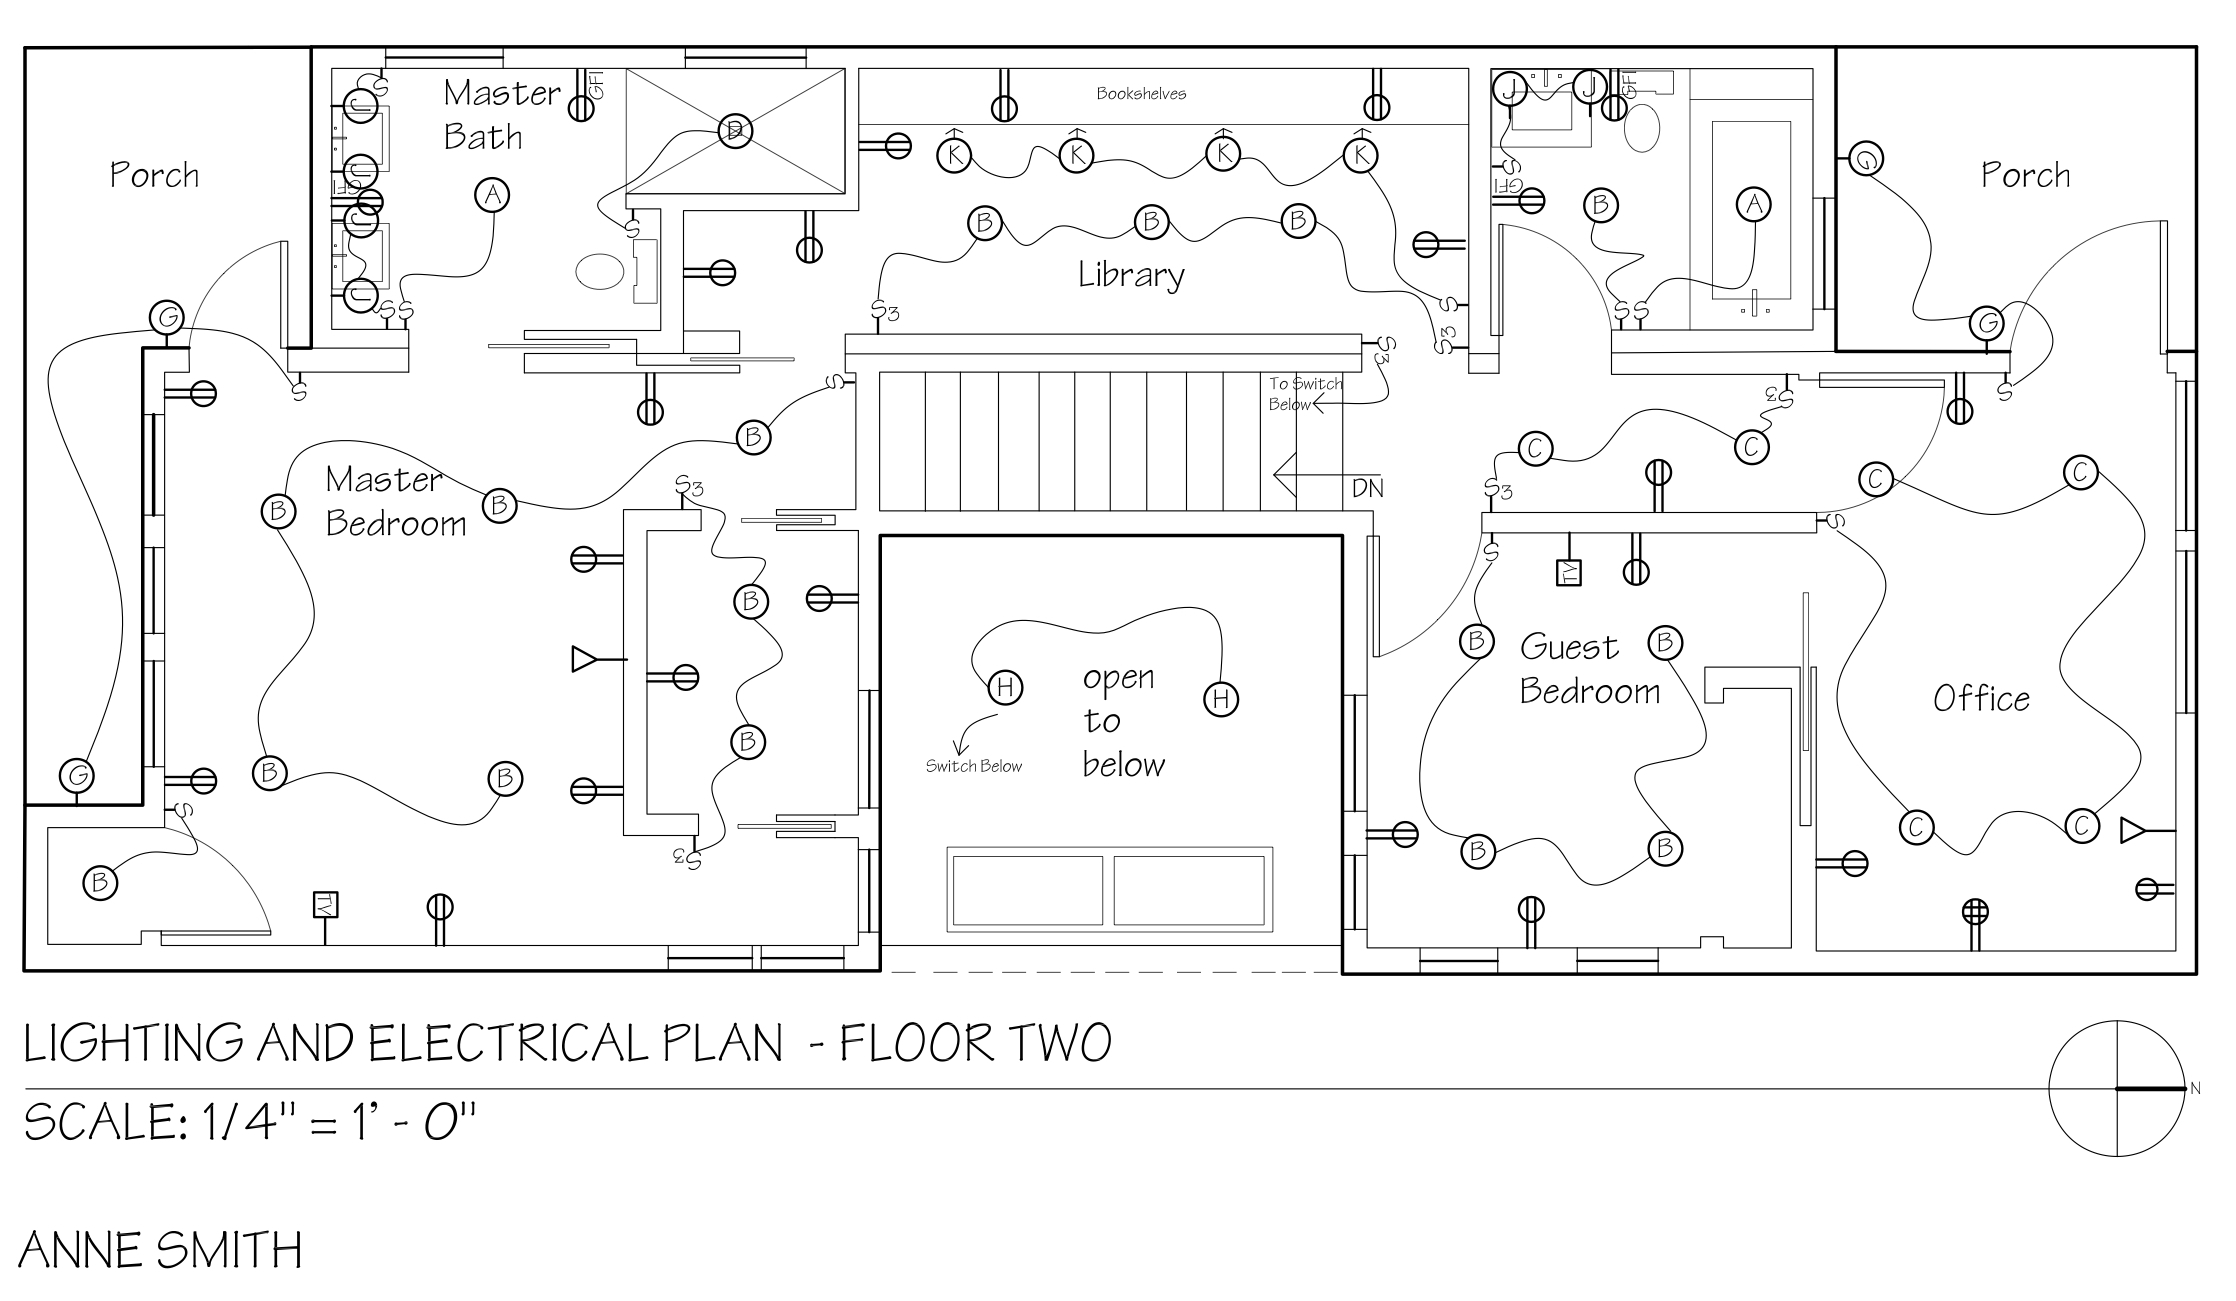 Lighting Floor Plan Symbols - Democraciaejustica